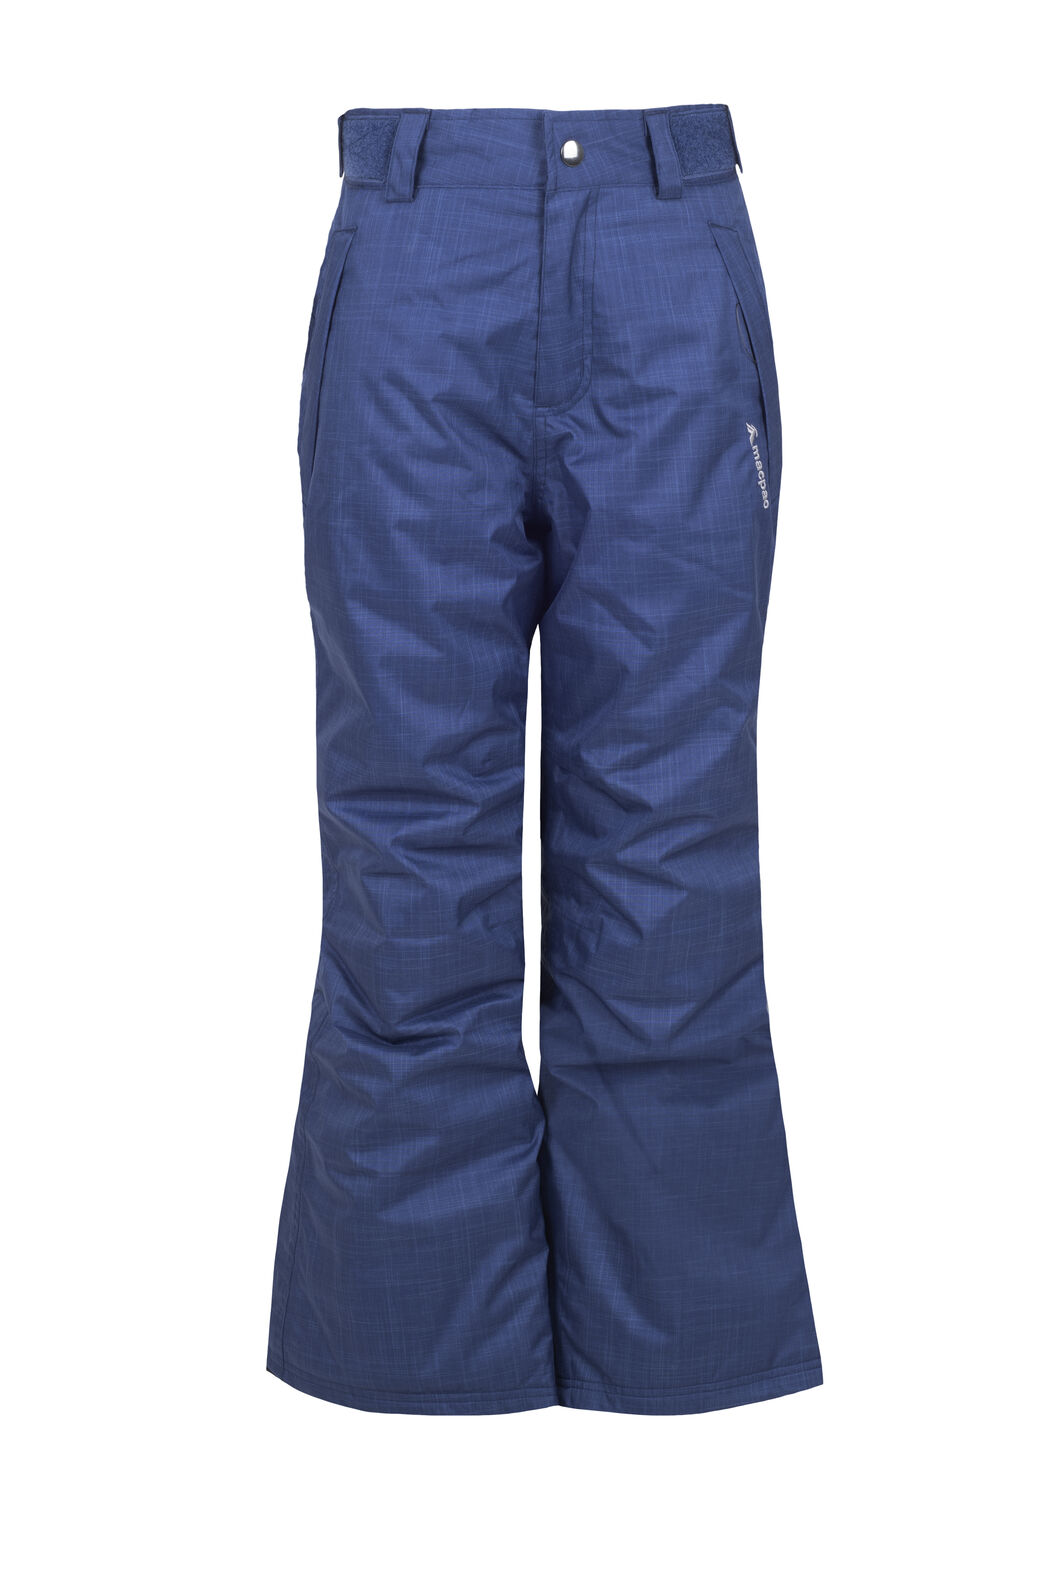 Macpac Spree Reflex™ Ski Pants — Kids', Medieval Blue, hi-res